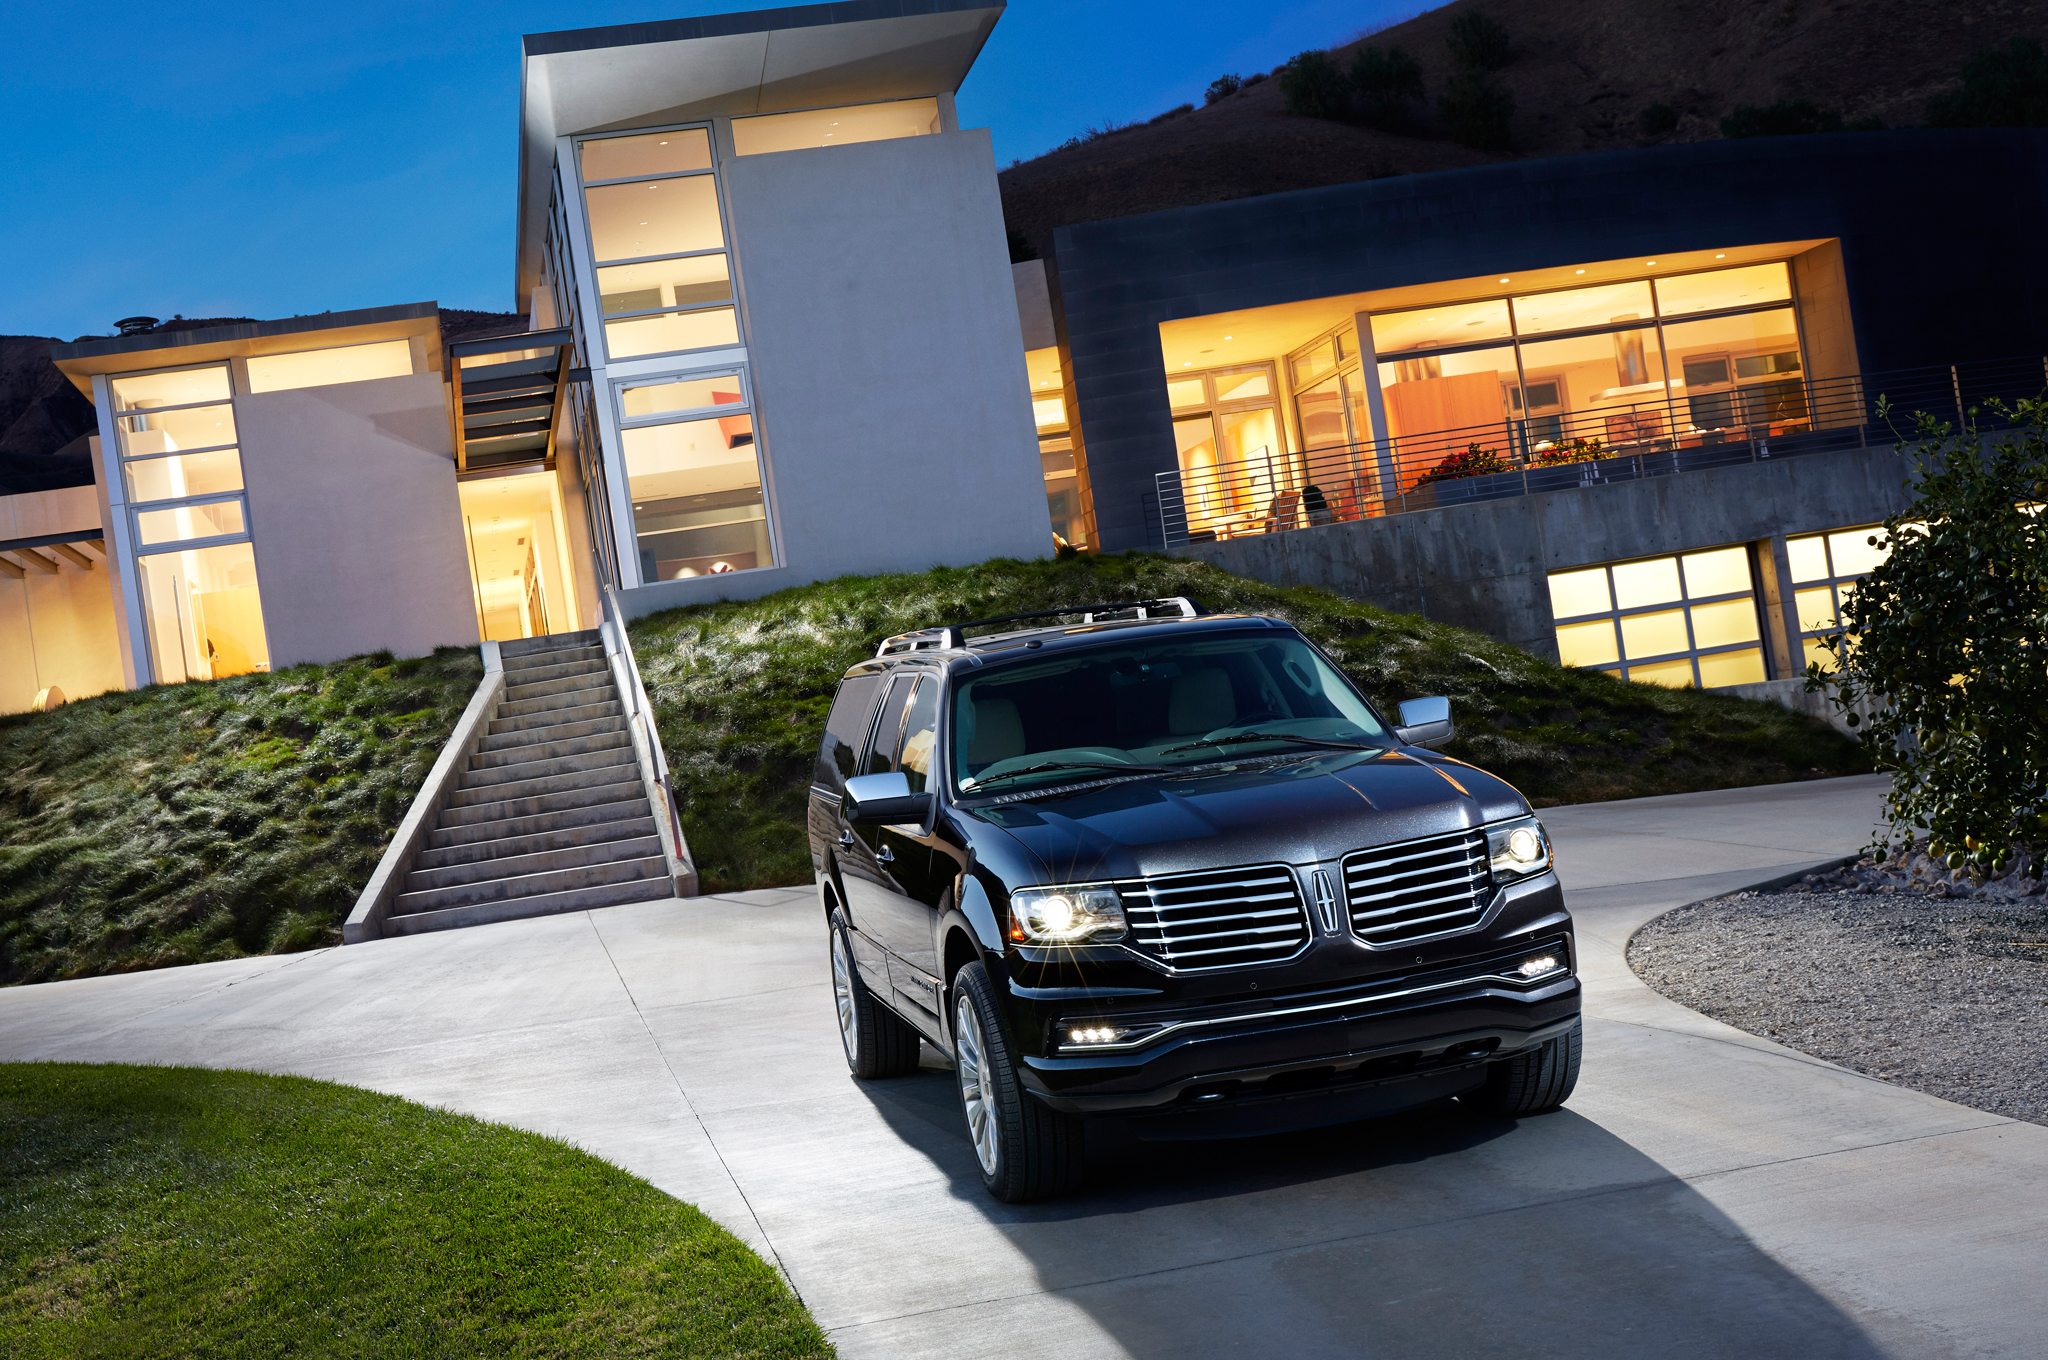 TOTD: 2015 Cadillac Escalade, 2015 Lincoln Navigator, or Something Else?